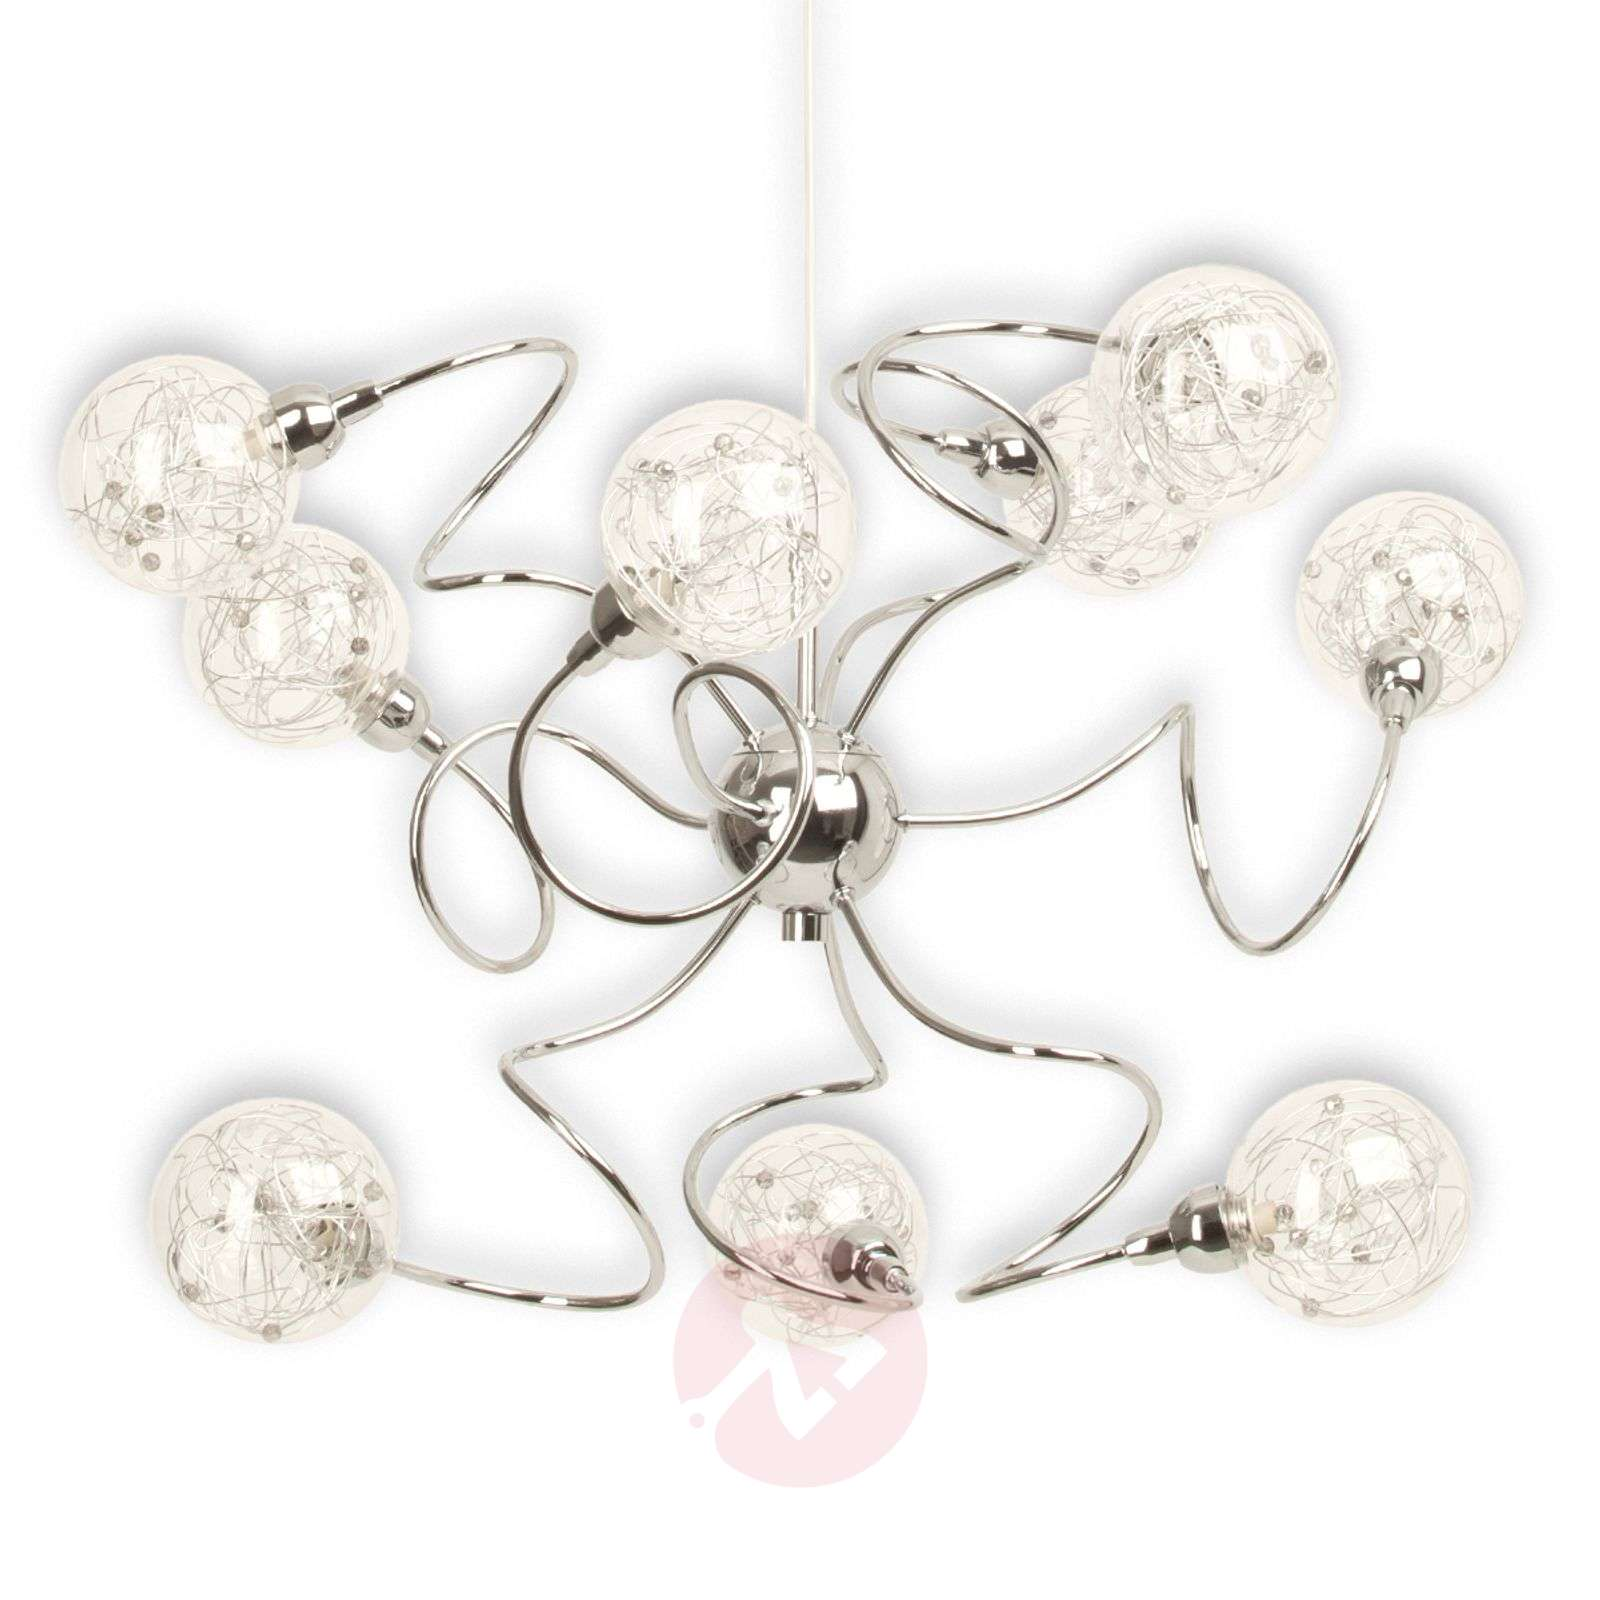 Joya a 9-bulb hanging light-1509041-01